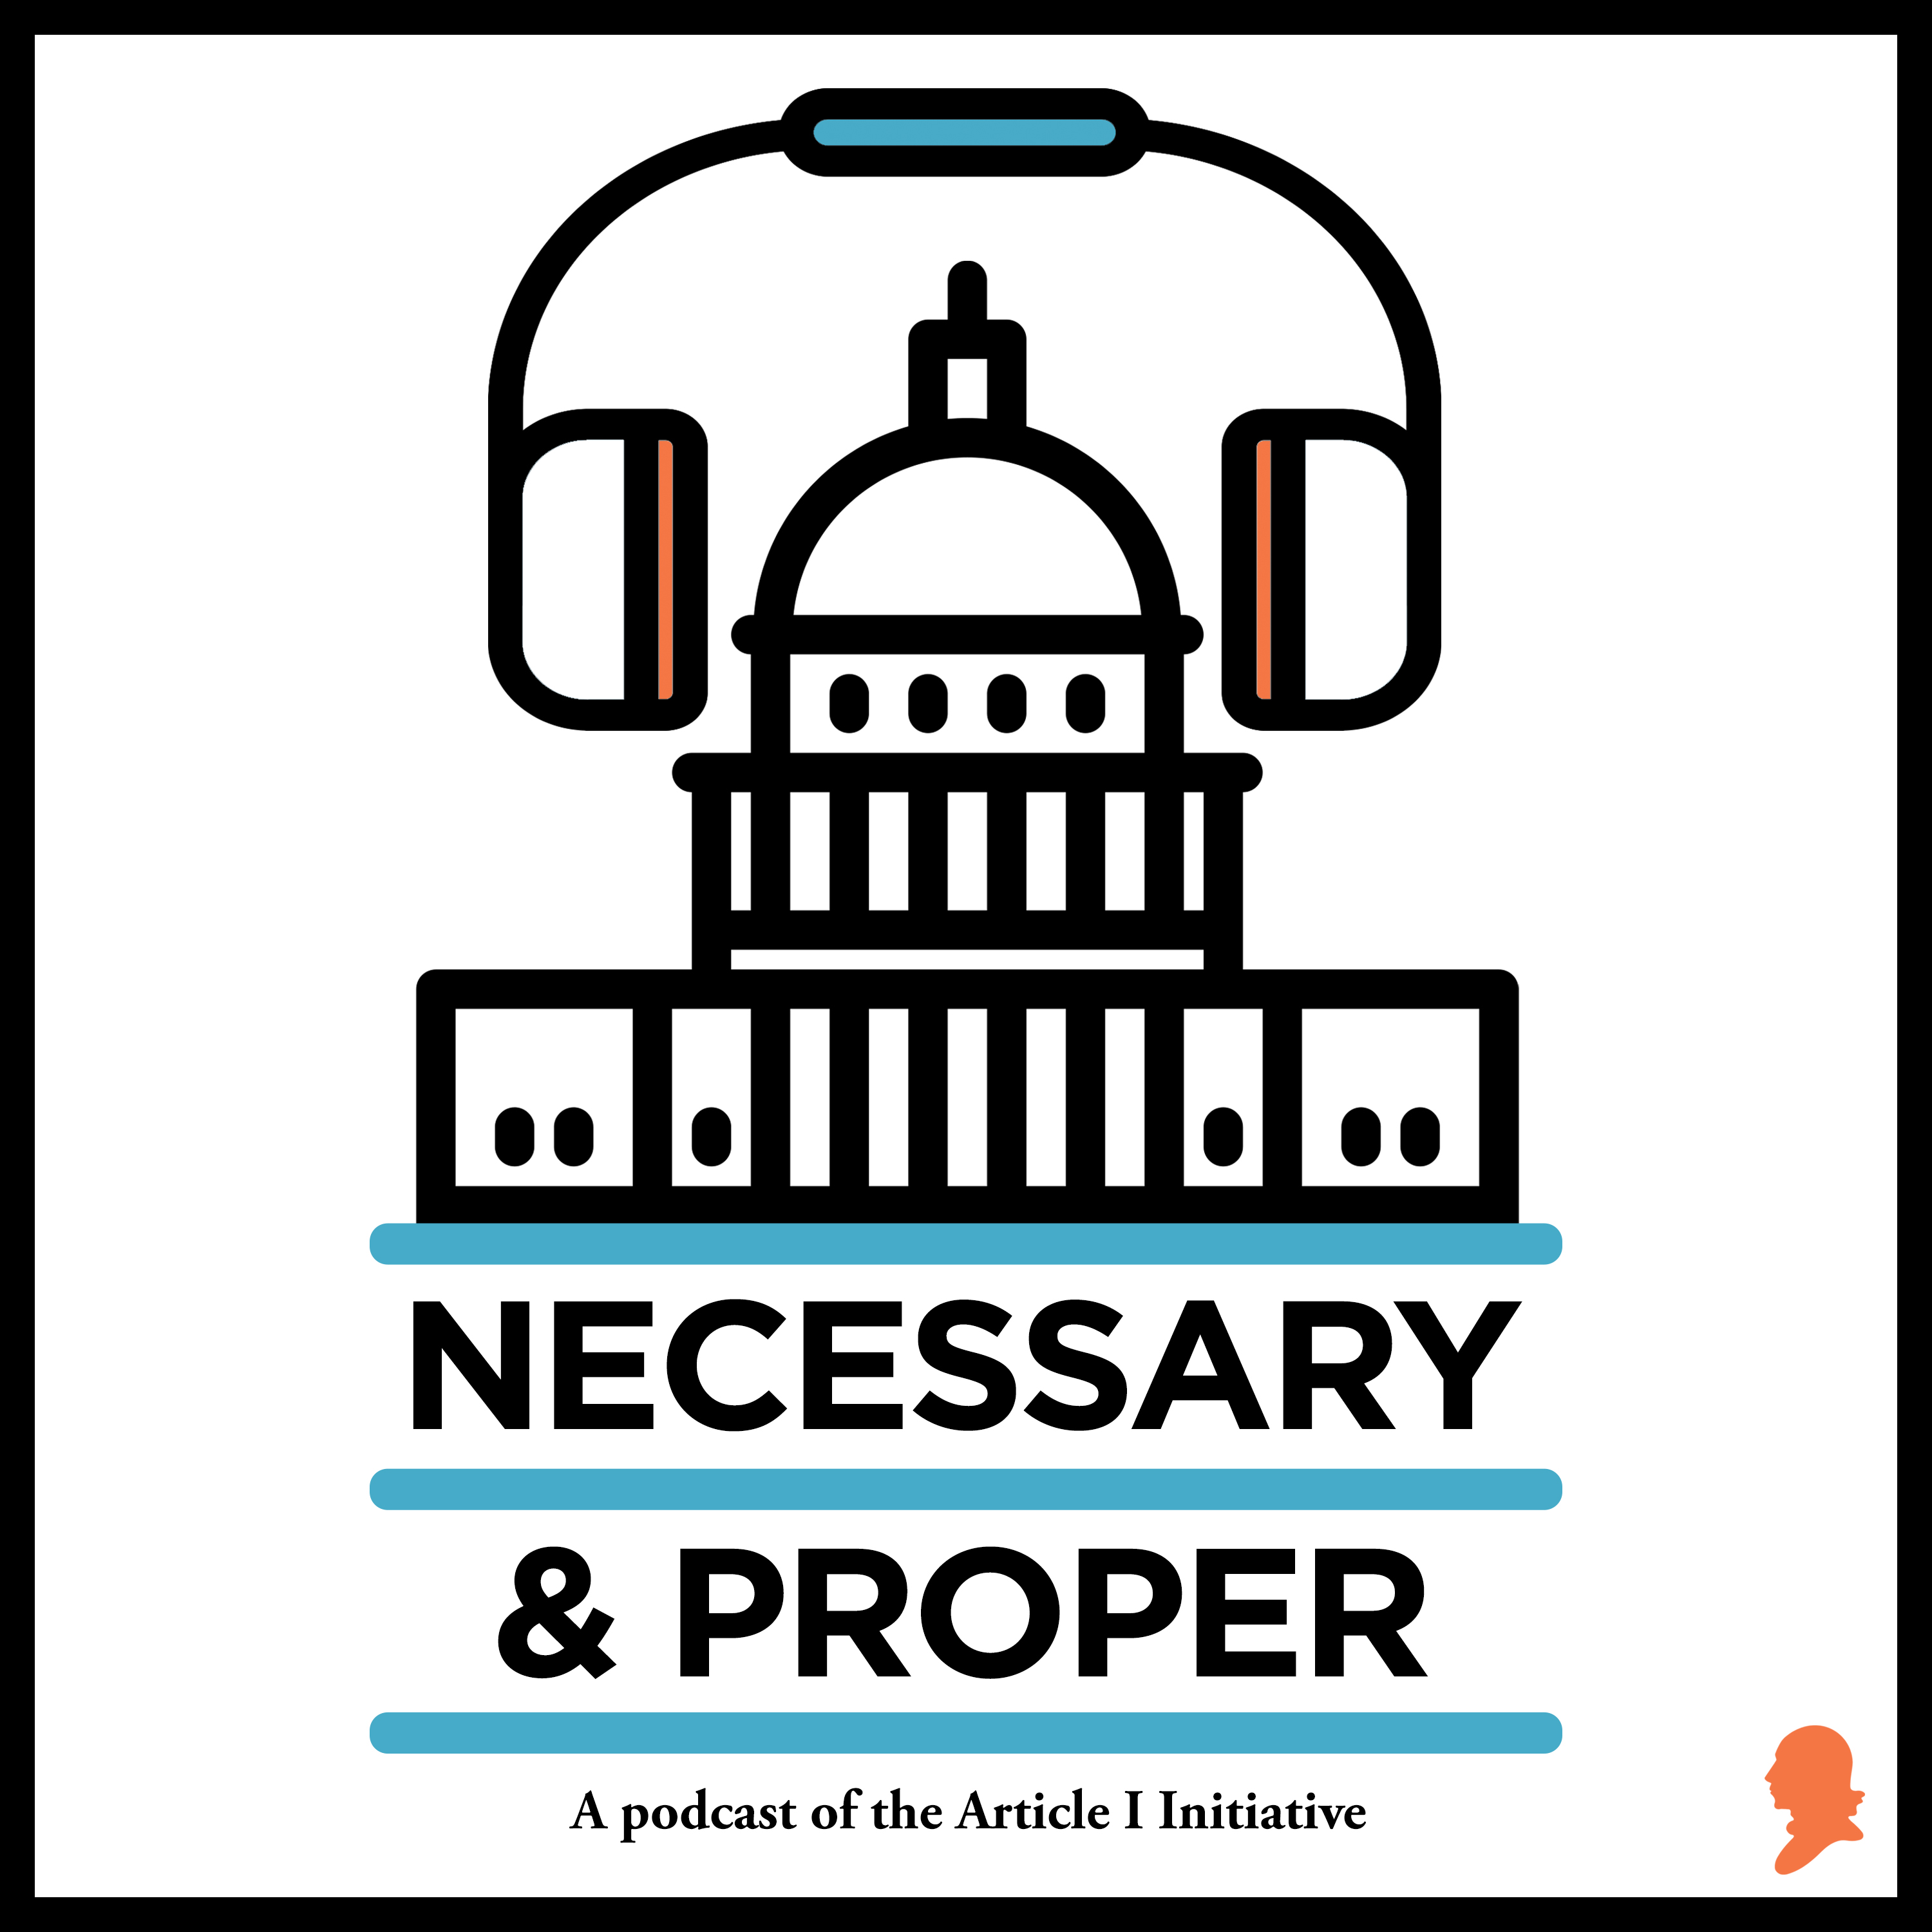 Necessary & Proper Episode 63: Kisor and Gundy – The Future of Administrative Law?